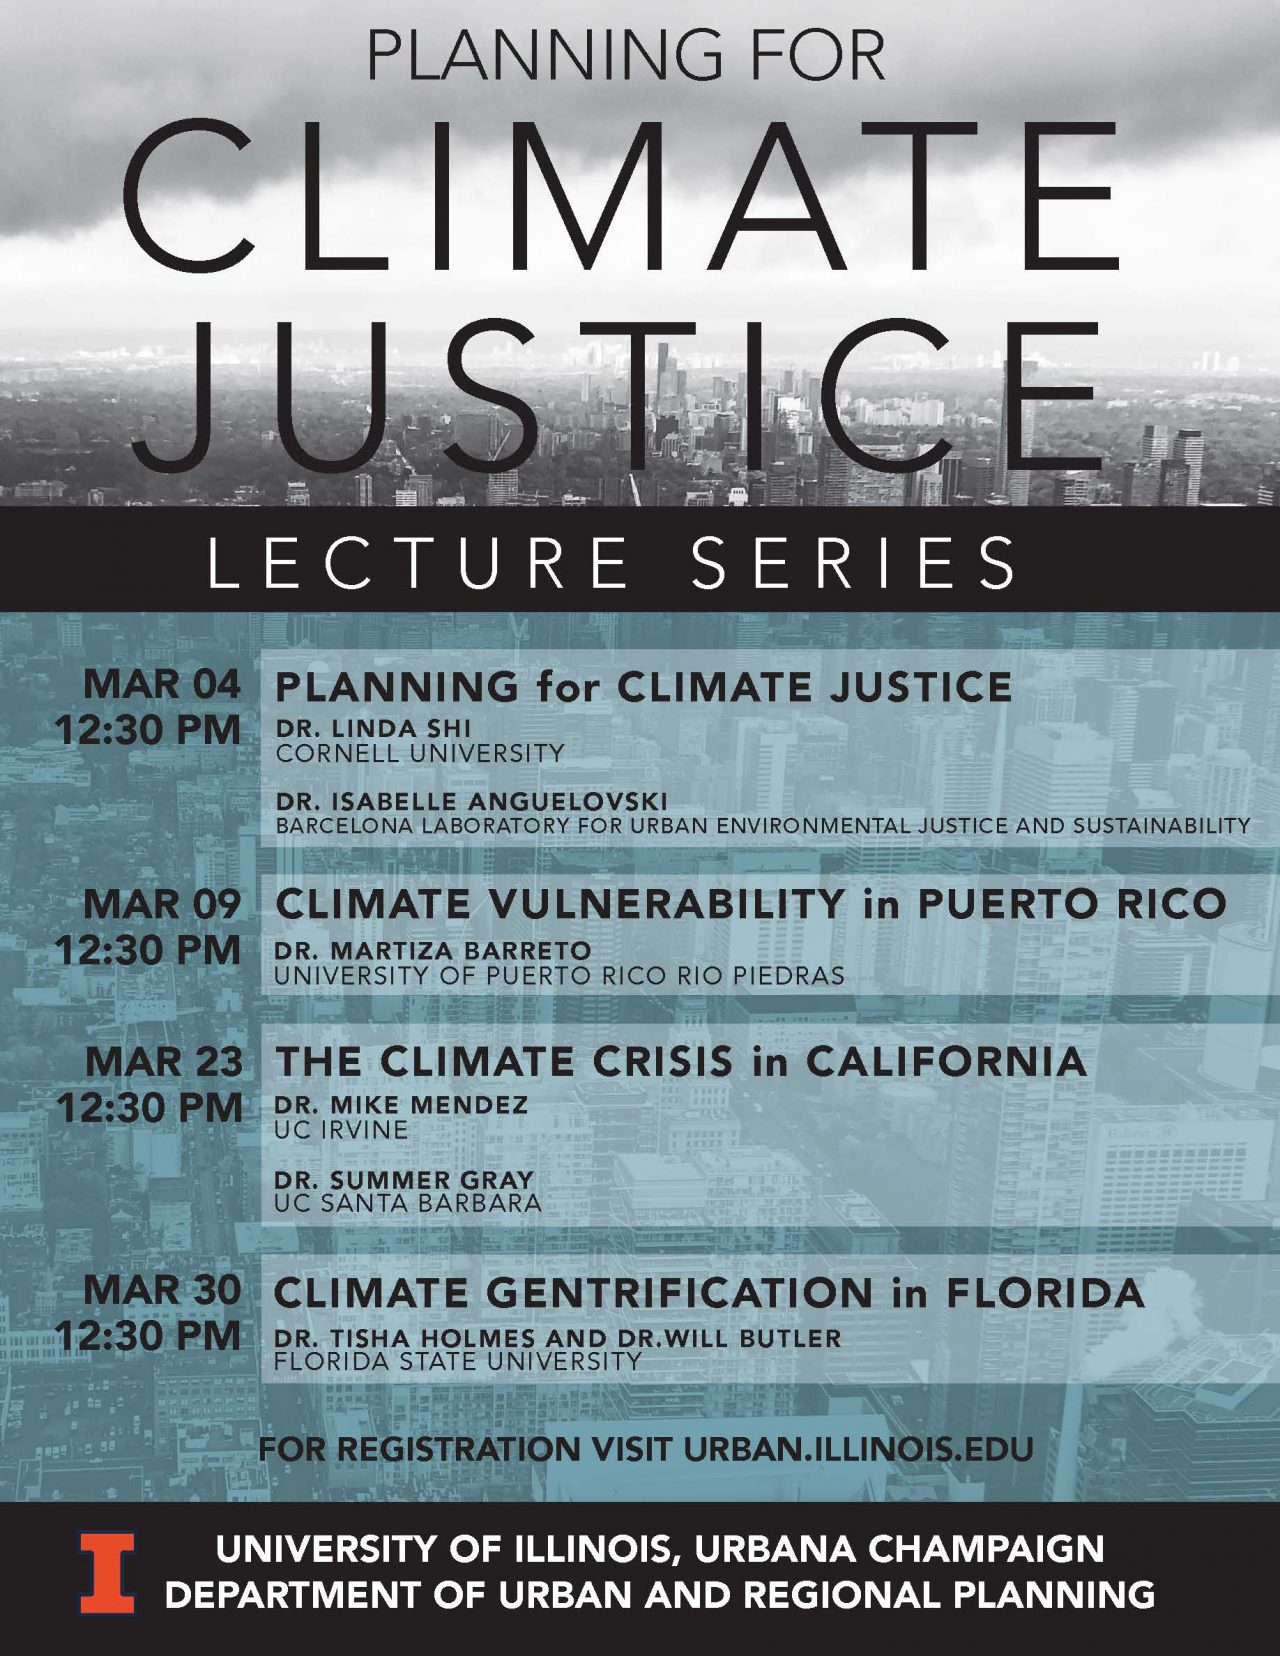 Flier for Planning for Climate Justice Lecture Series